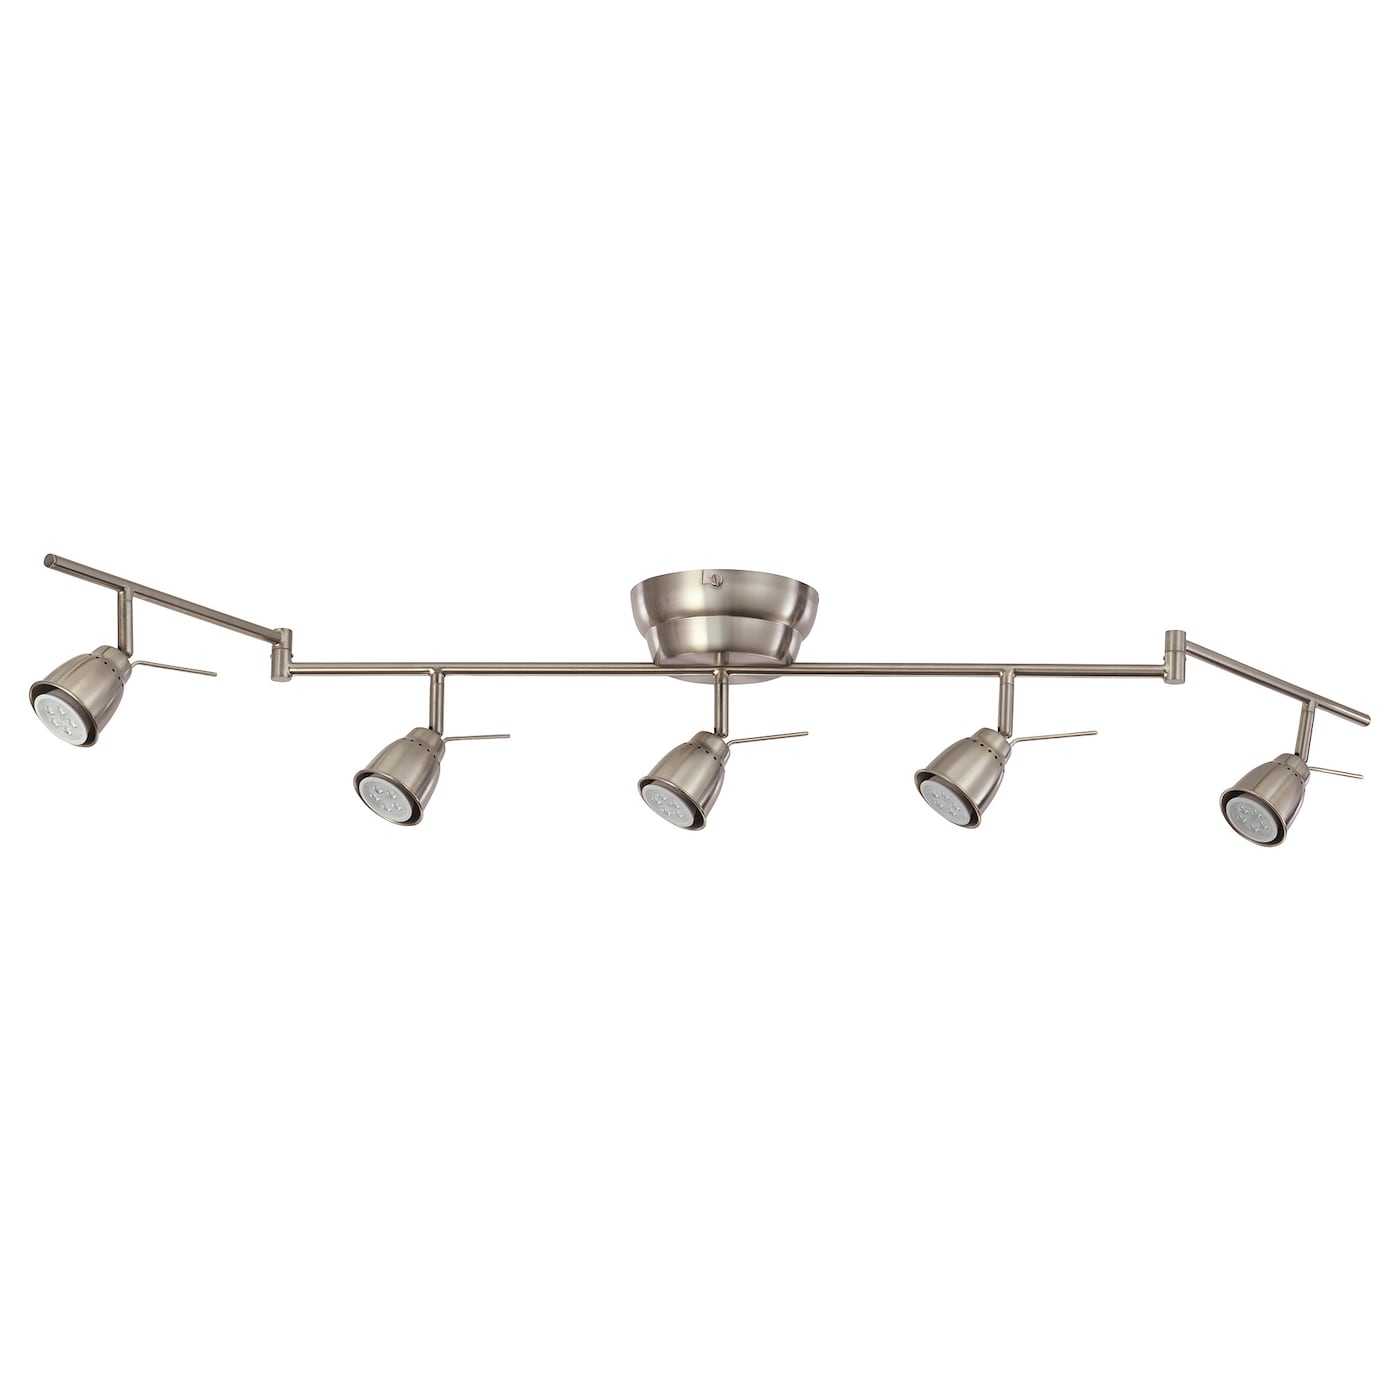 Industrial track lighting industrial track lighting zoom Bathroom Ikea Barometer Ceiling Track 5spots Zoom In Ikea Ceiling Lights Led Ceiling Lights Ikea